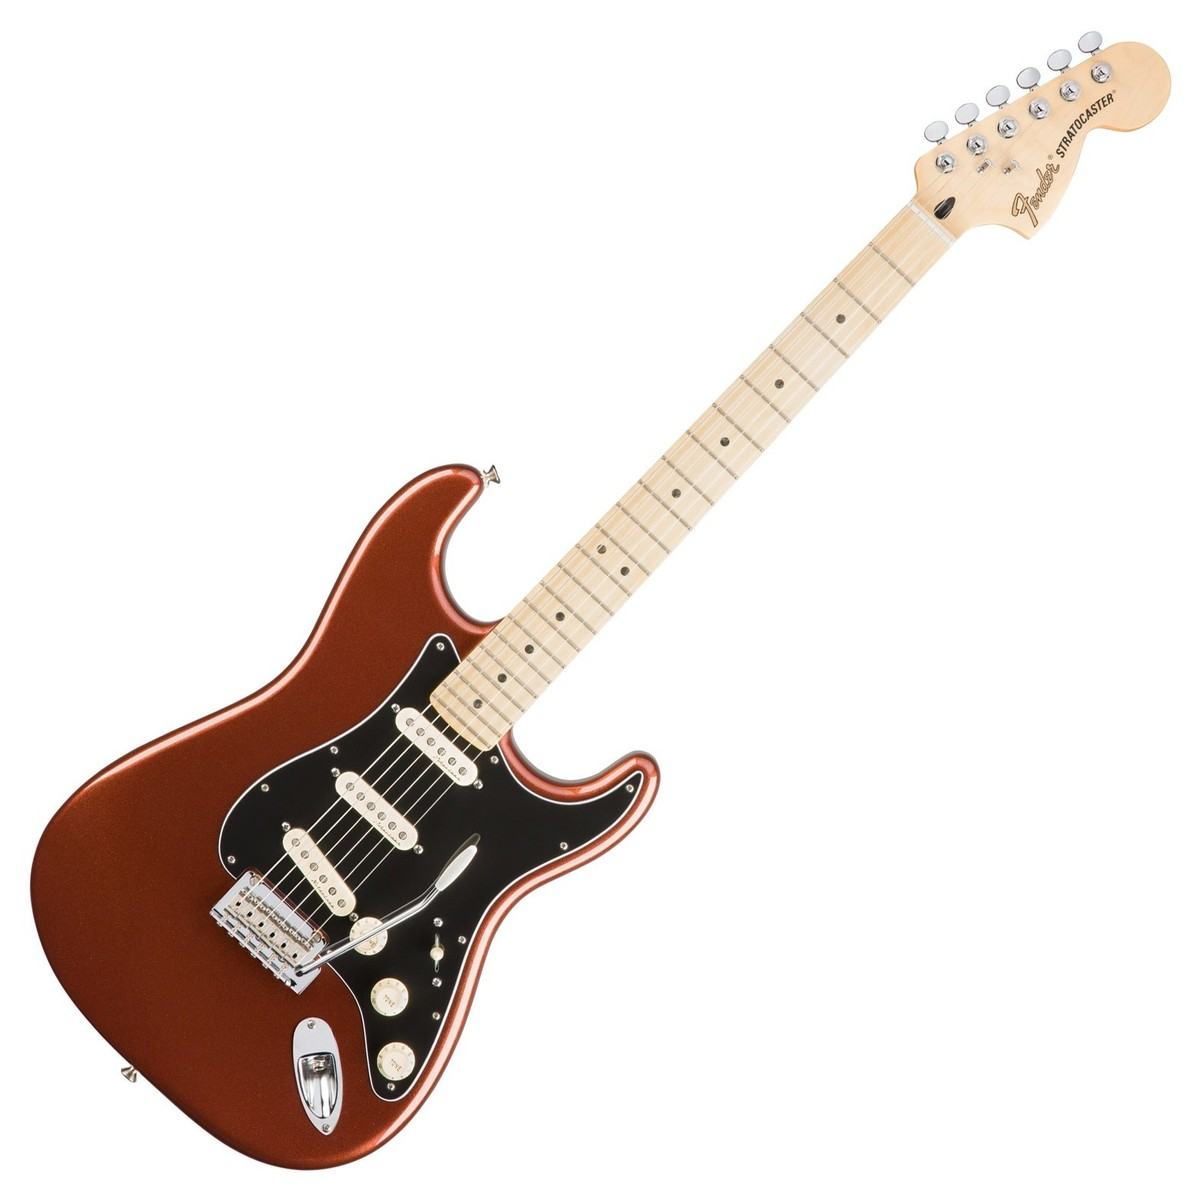 fender deluxe roadhouse stratocaster classic copper at gear4music. Black Bedroom Furniture Sets. Home Design Ideas